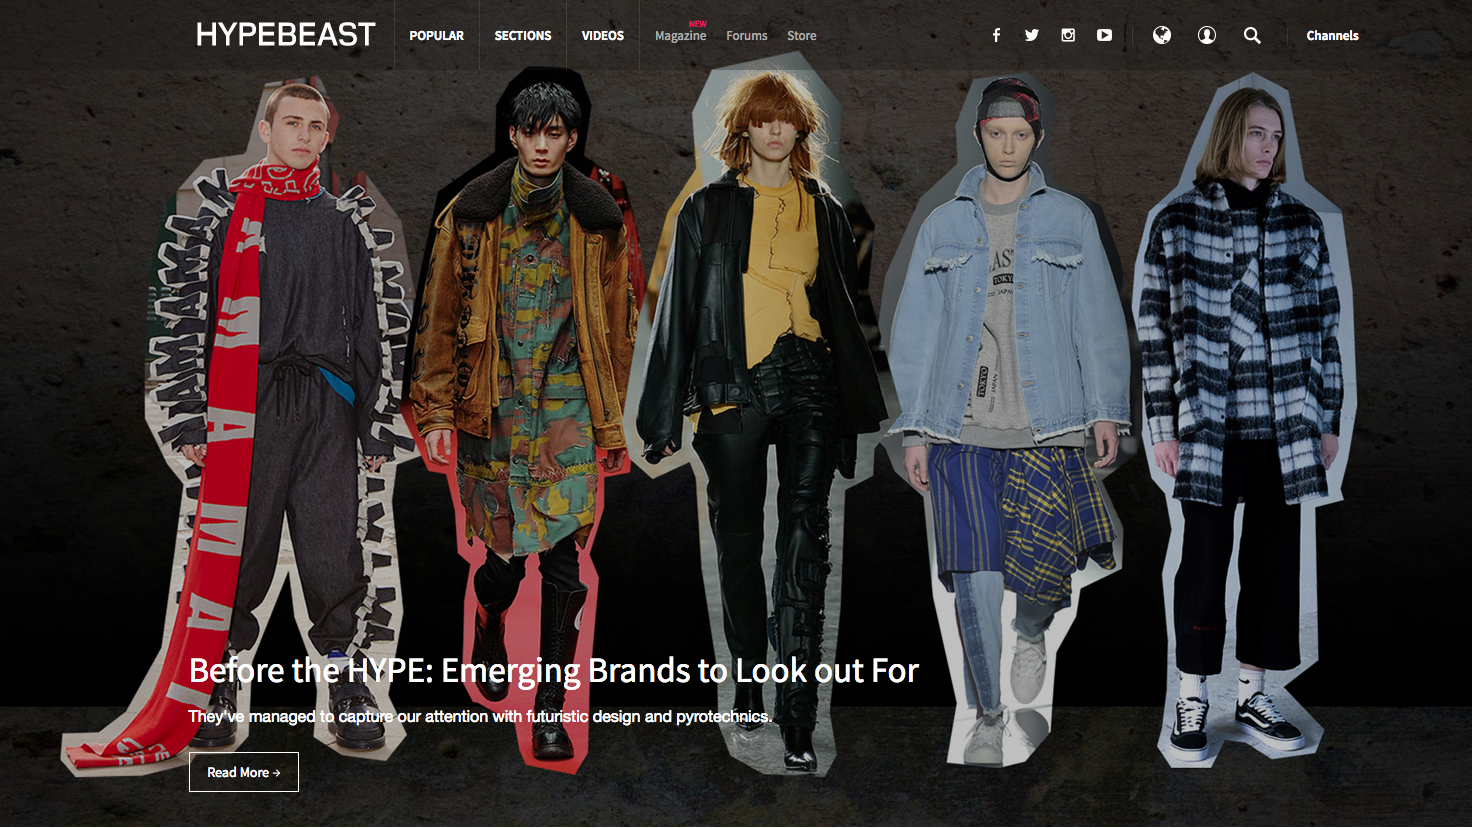 Underground Fashion King Hypebeast Just Had The Best Stock Debut In Asia So Far This Year Quartz